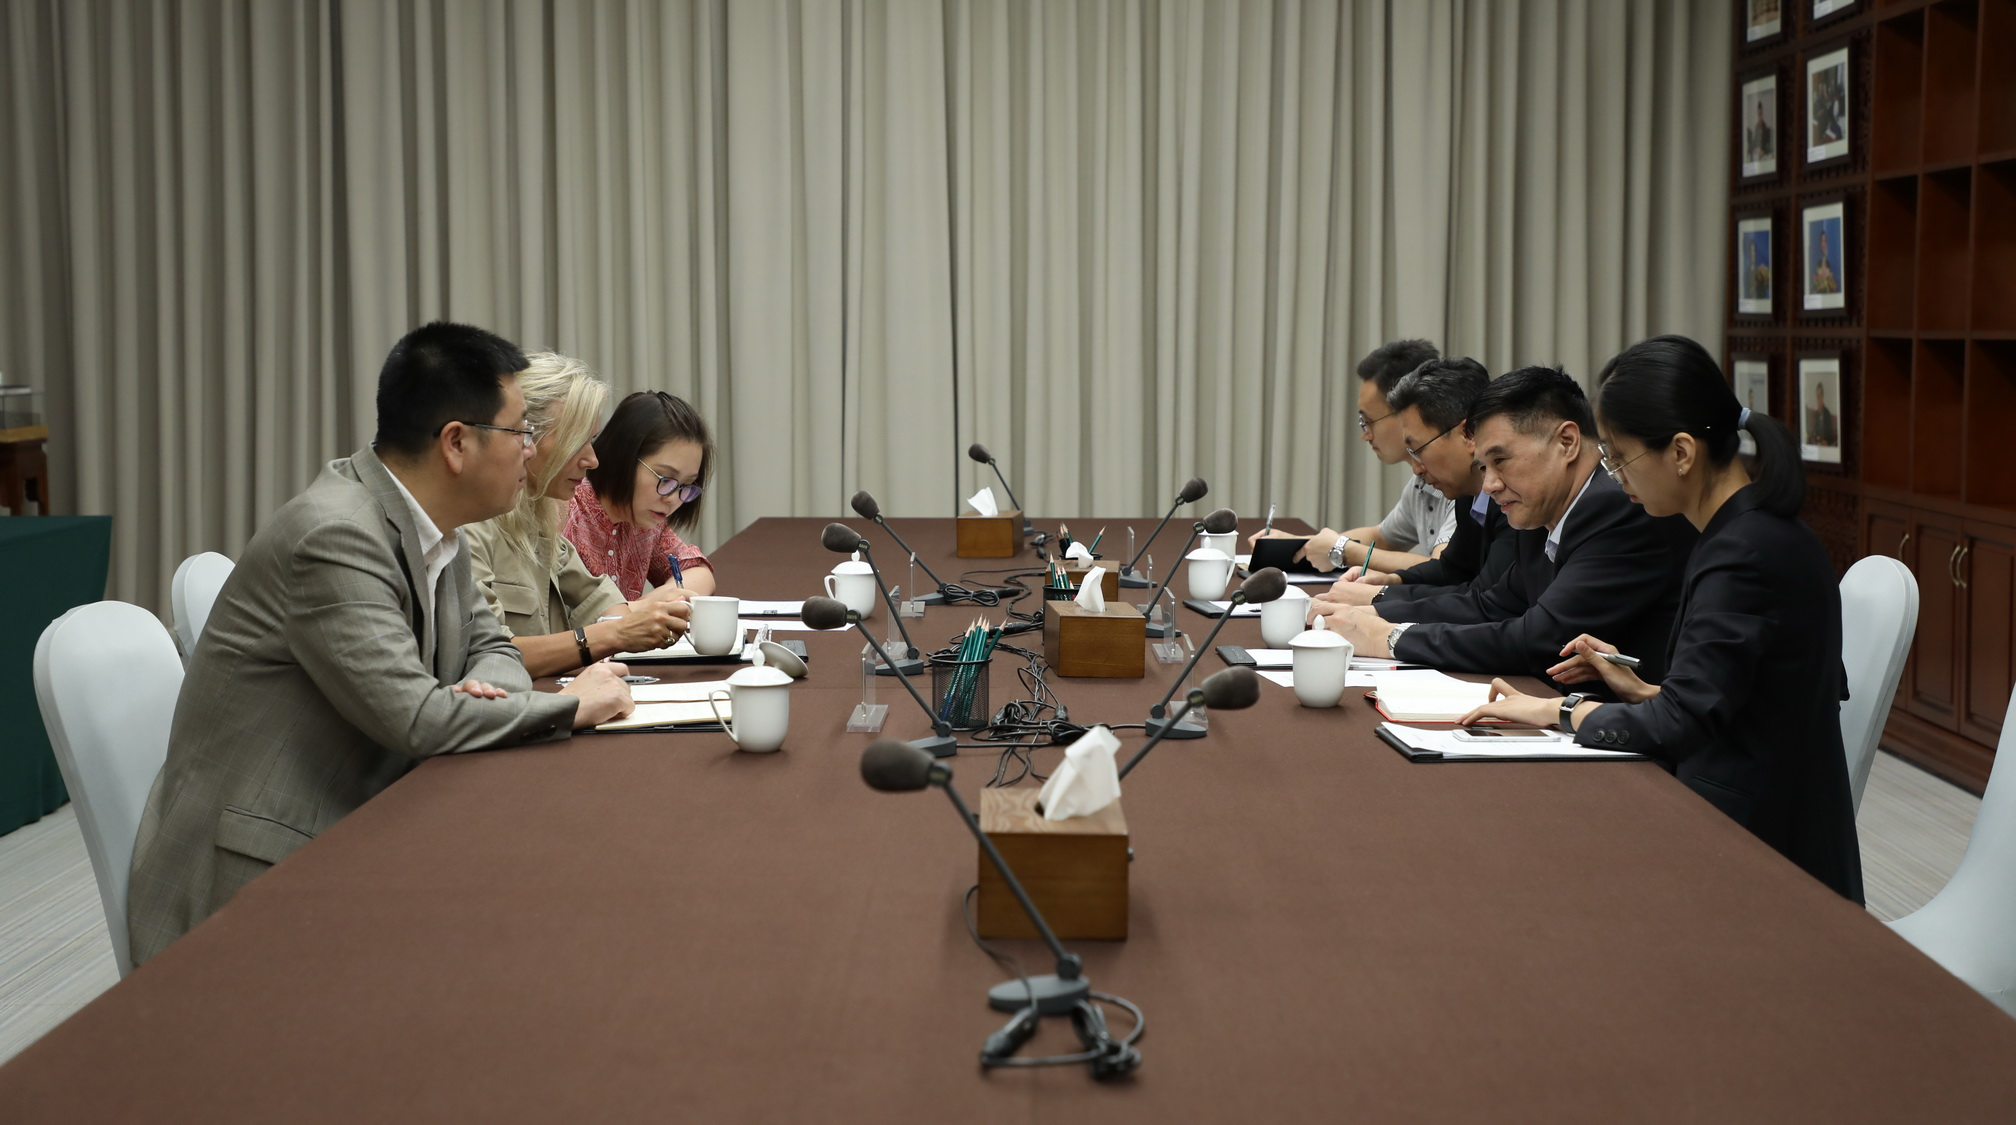 CCIEE Executive Vice Chairman Zhang Xiaoqiang Meets with Ms. Deborah Lehr, Vice Chairman of the Paulson Institute